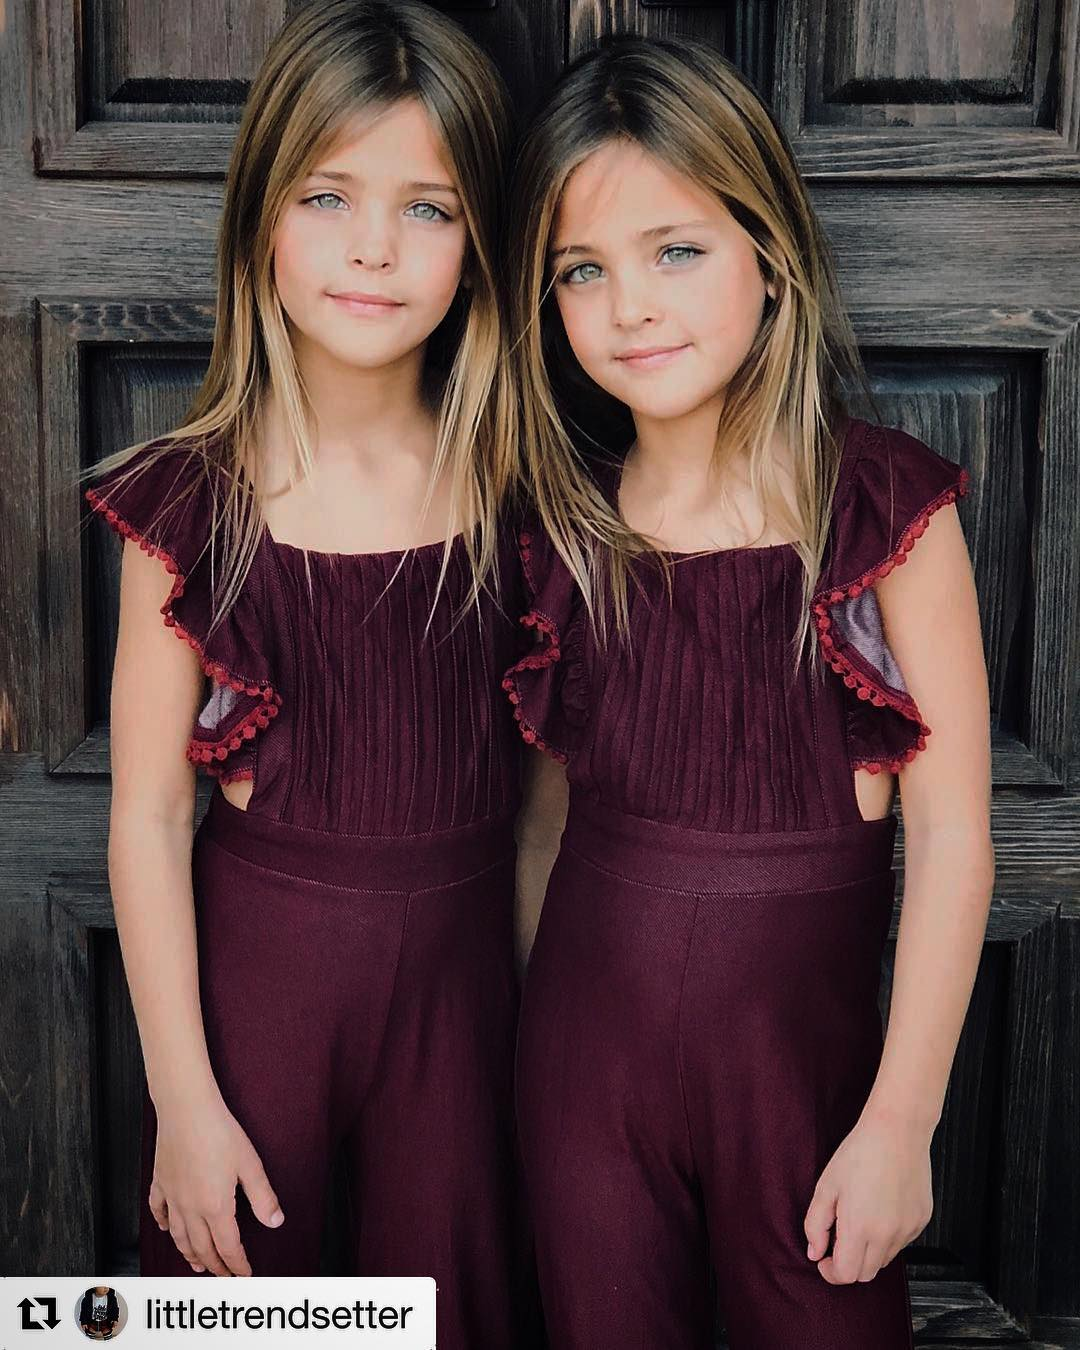 Identical Twins Were Born In 2010 - Now, They're Dubbed ...